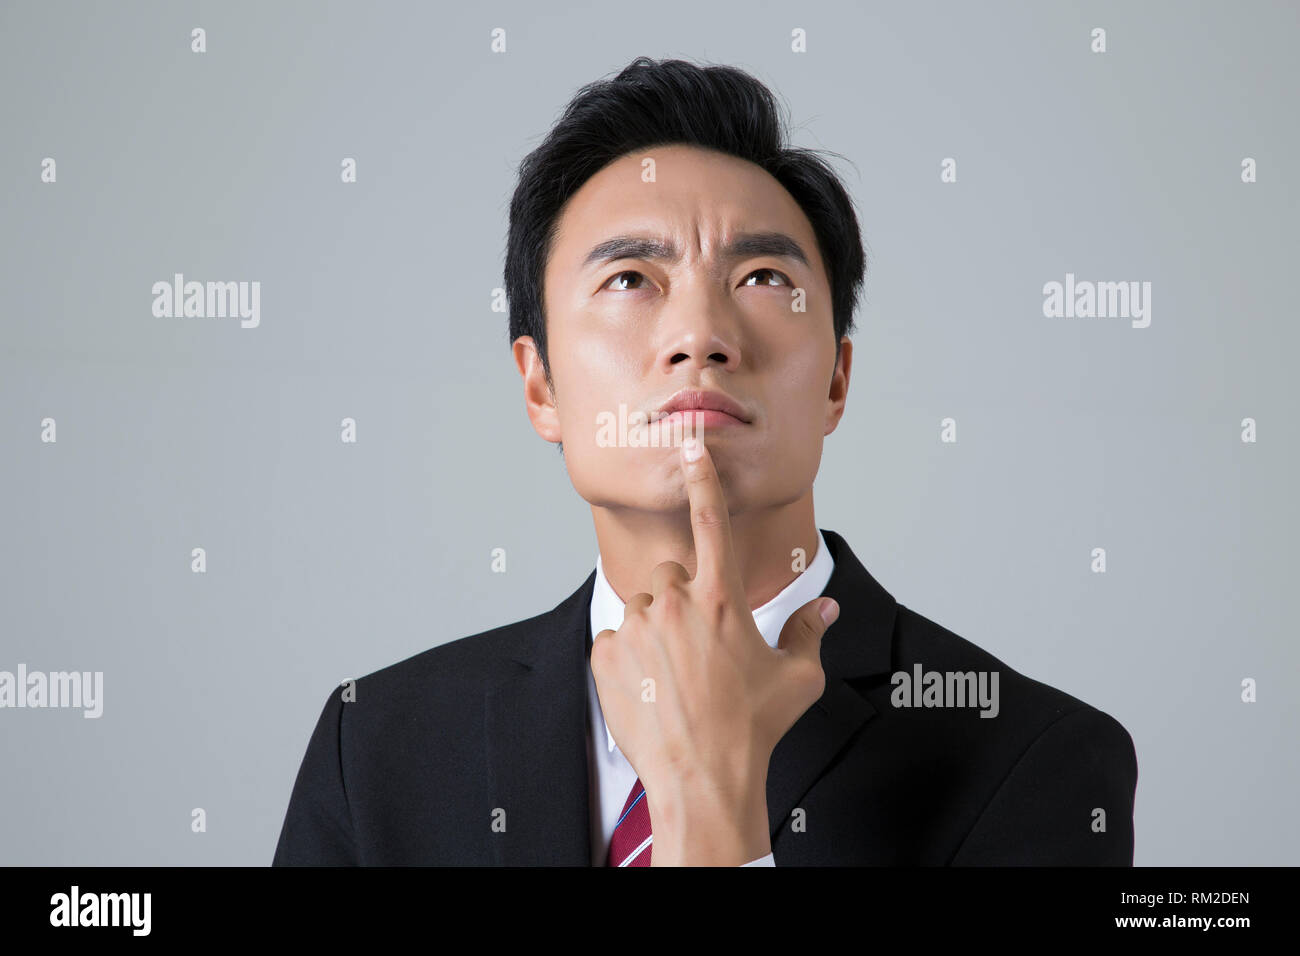 Young businessman concept photo. 046 - Stock Image